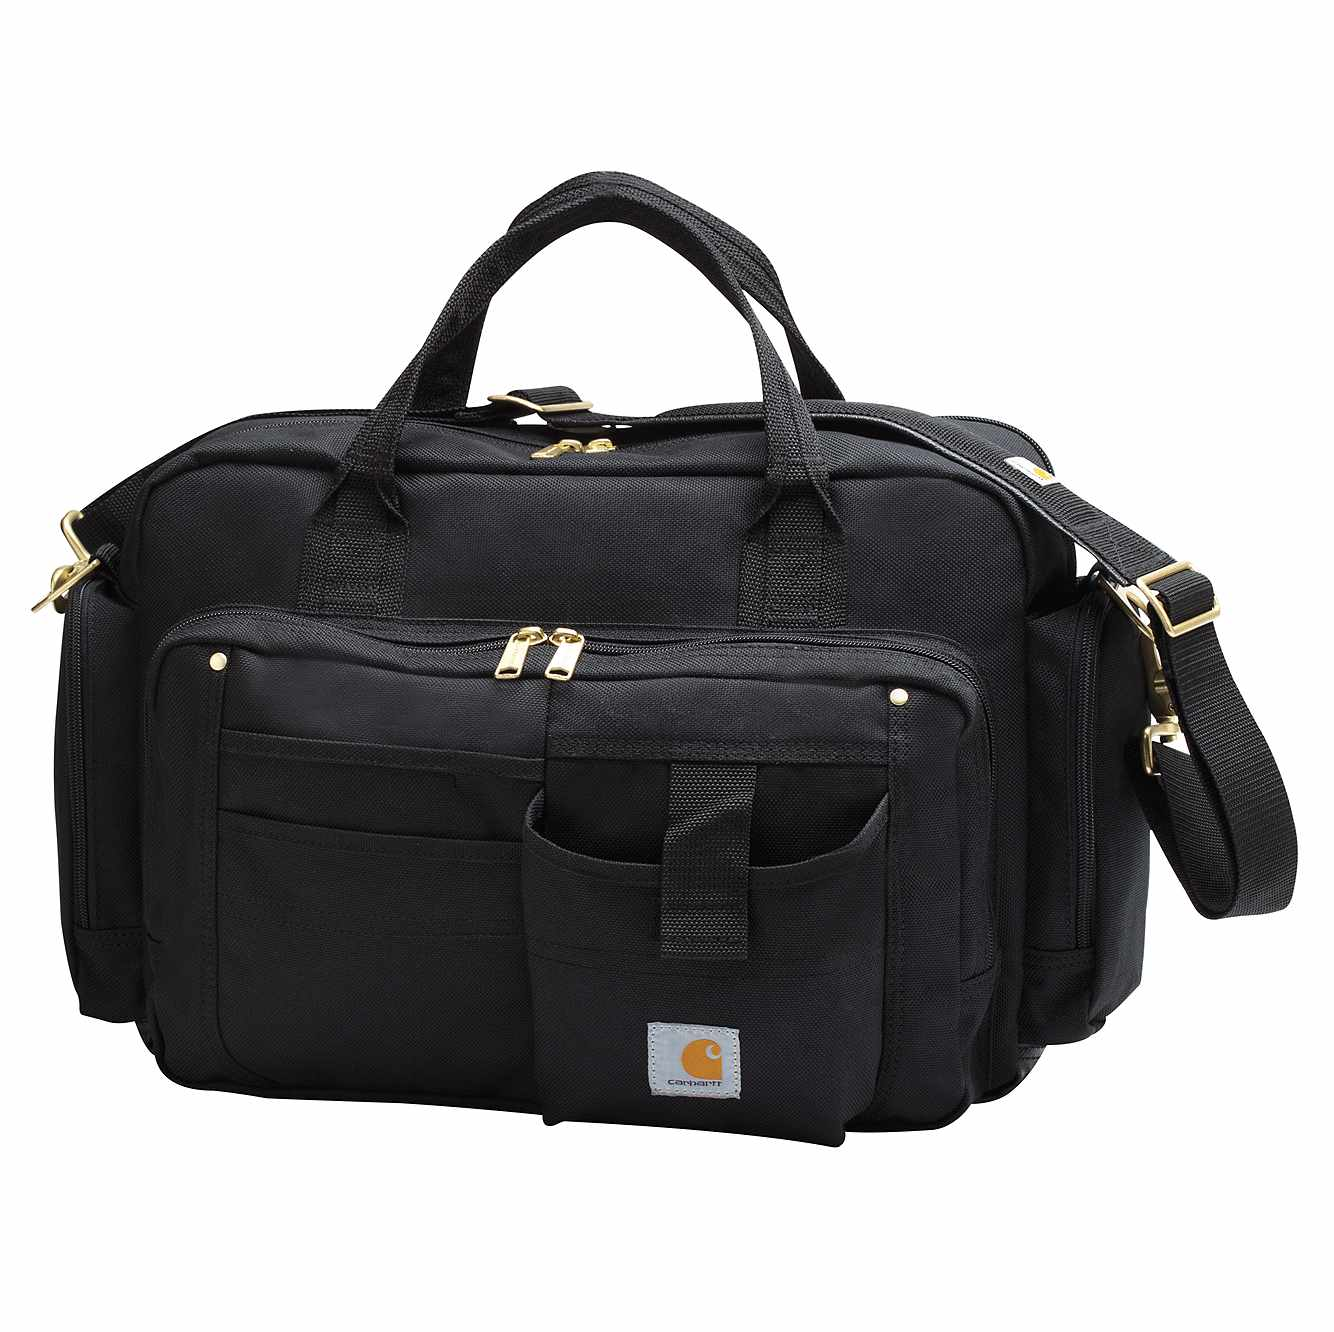 Picture of Legacy Brief Bag in Black